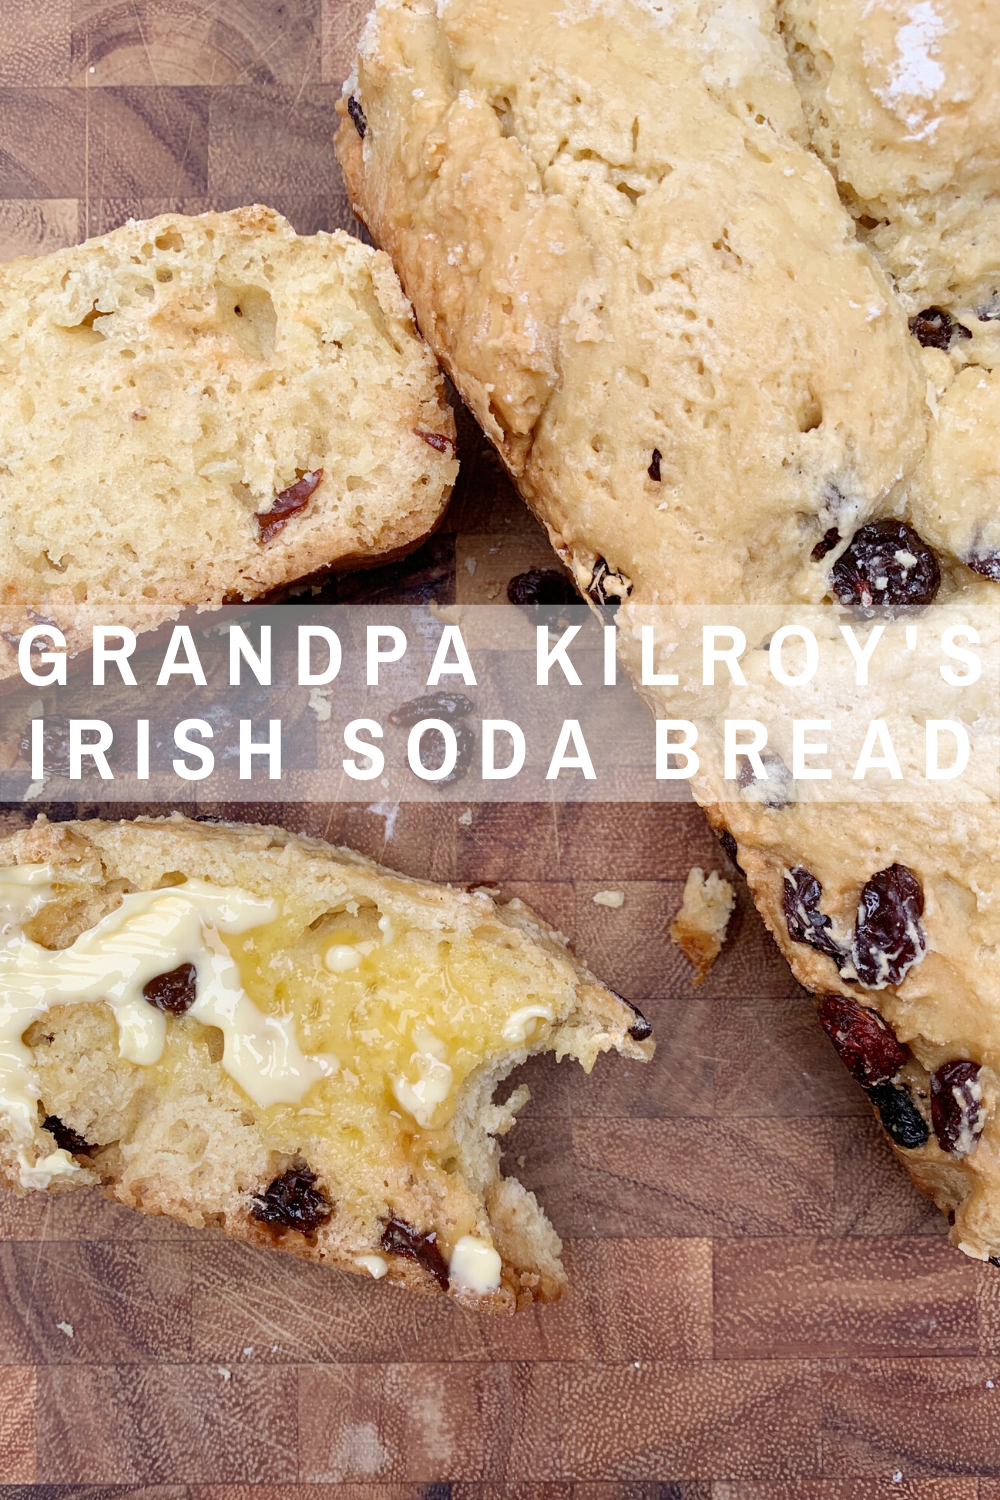 Grandpa Kilroy's Irish Soda Bread #cuppatea